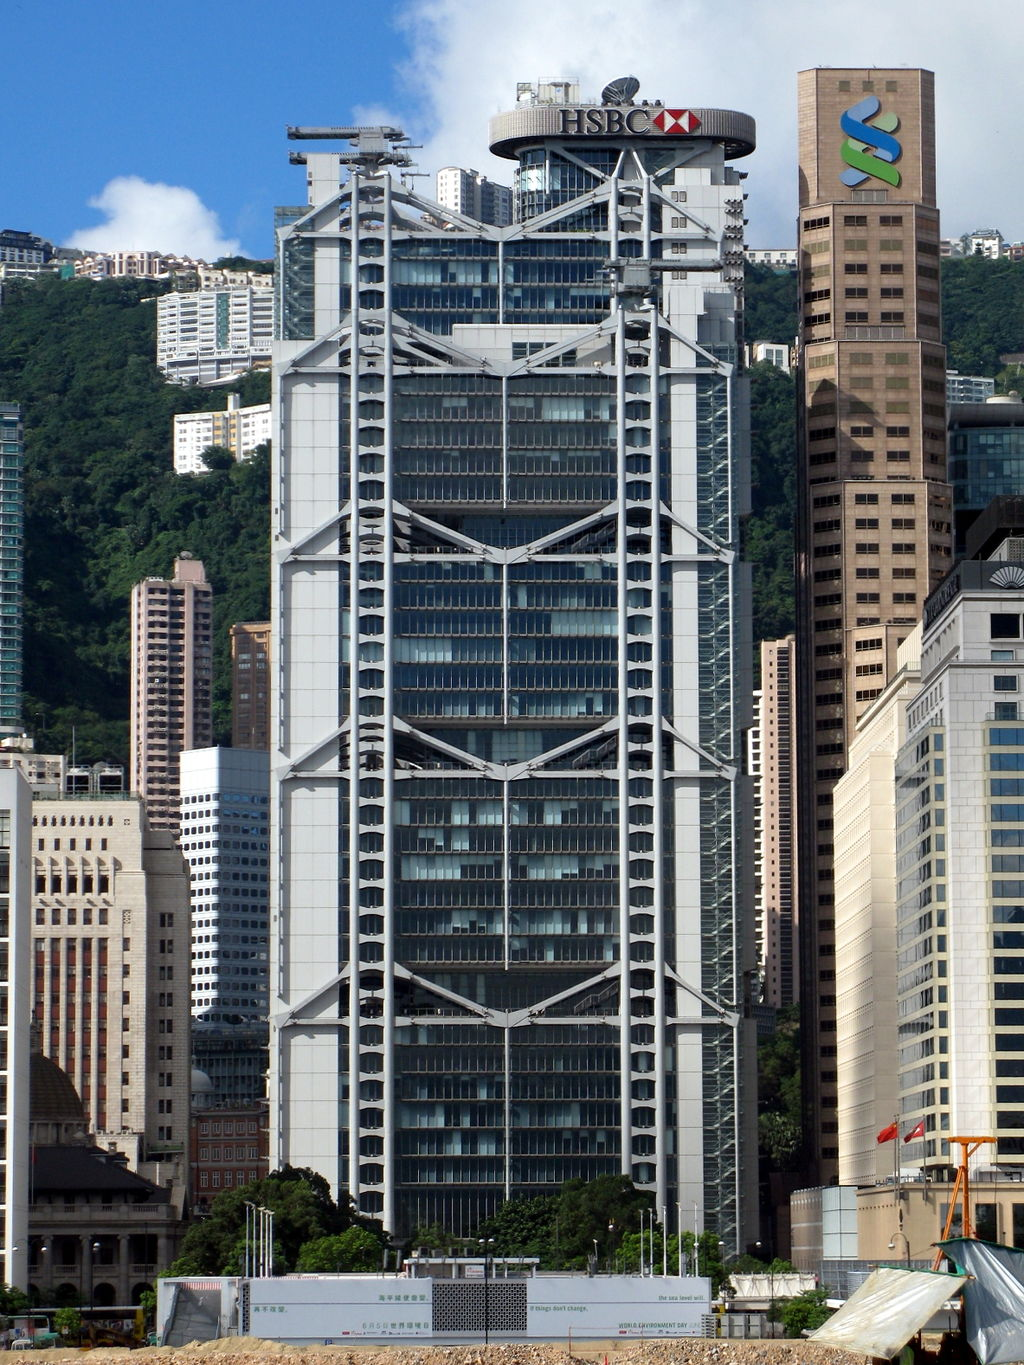 "The HSBC building has two cannons on the roof pointed in the direction of the Bank of China building to counteract ""negative energy"". (Image: WiNG via wikimedia CC BY 3.0)"